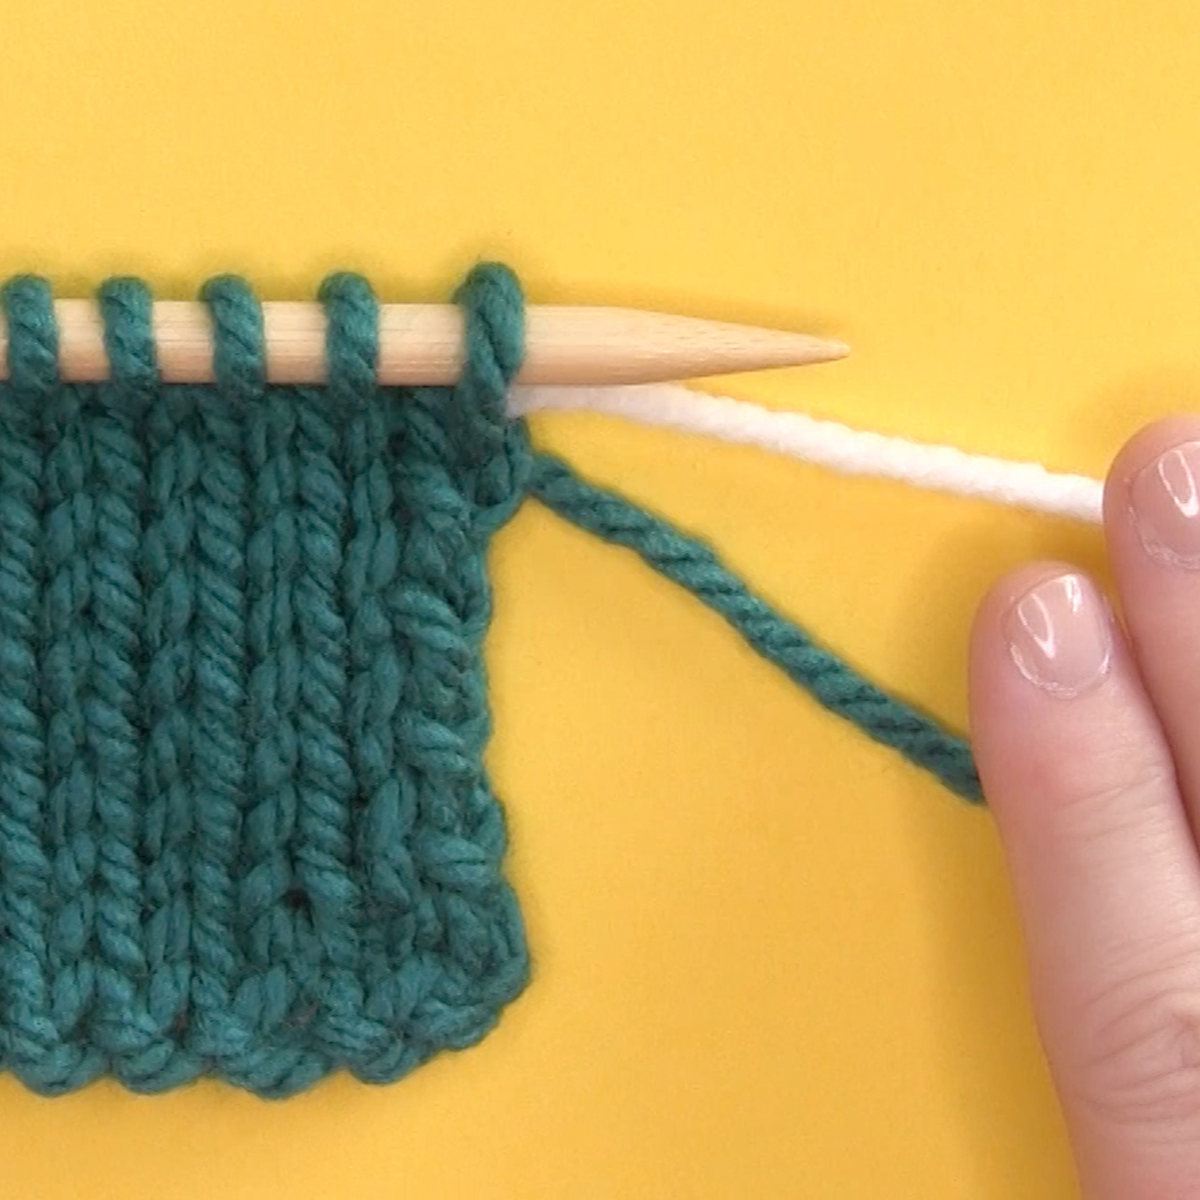 Knitted swatch with new yarn color introduced at the beginning of a row.